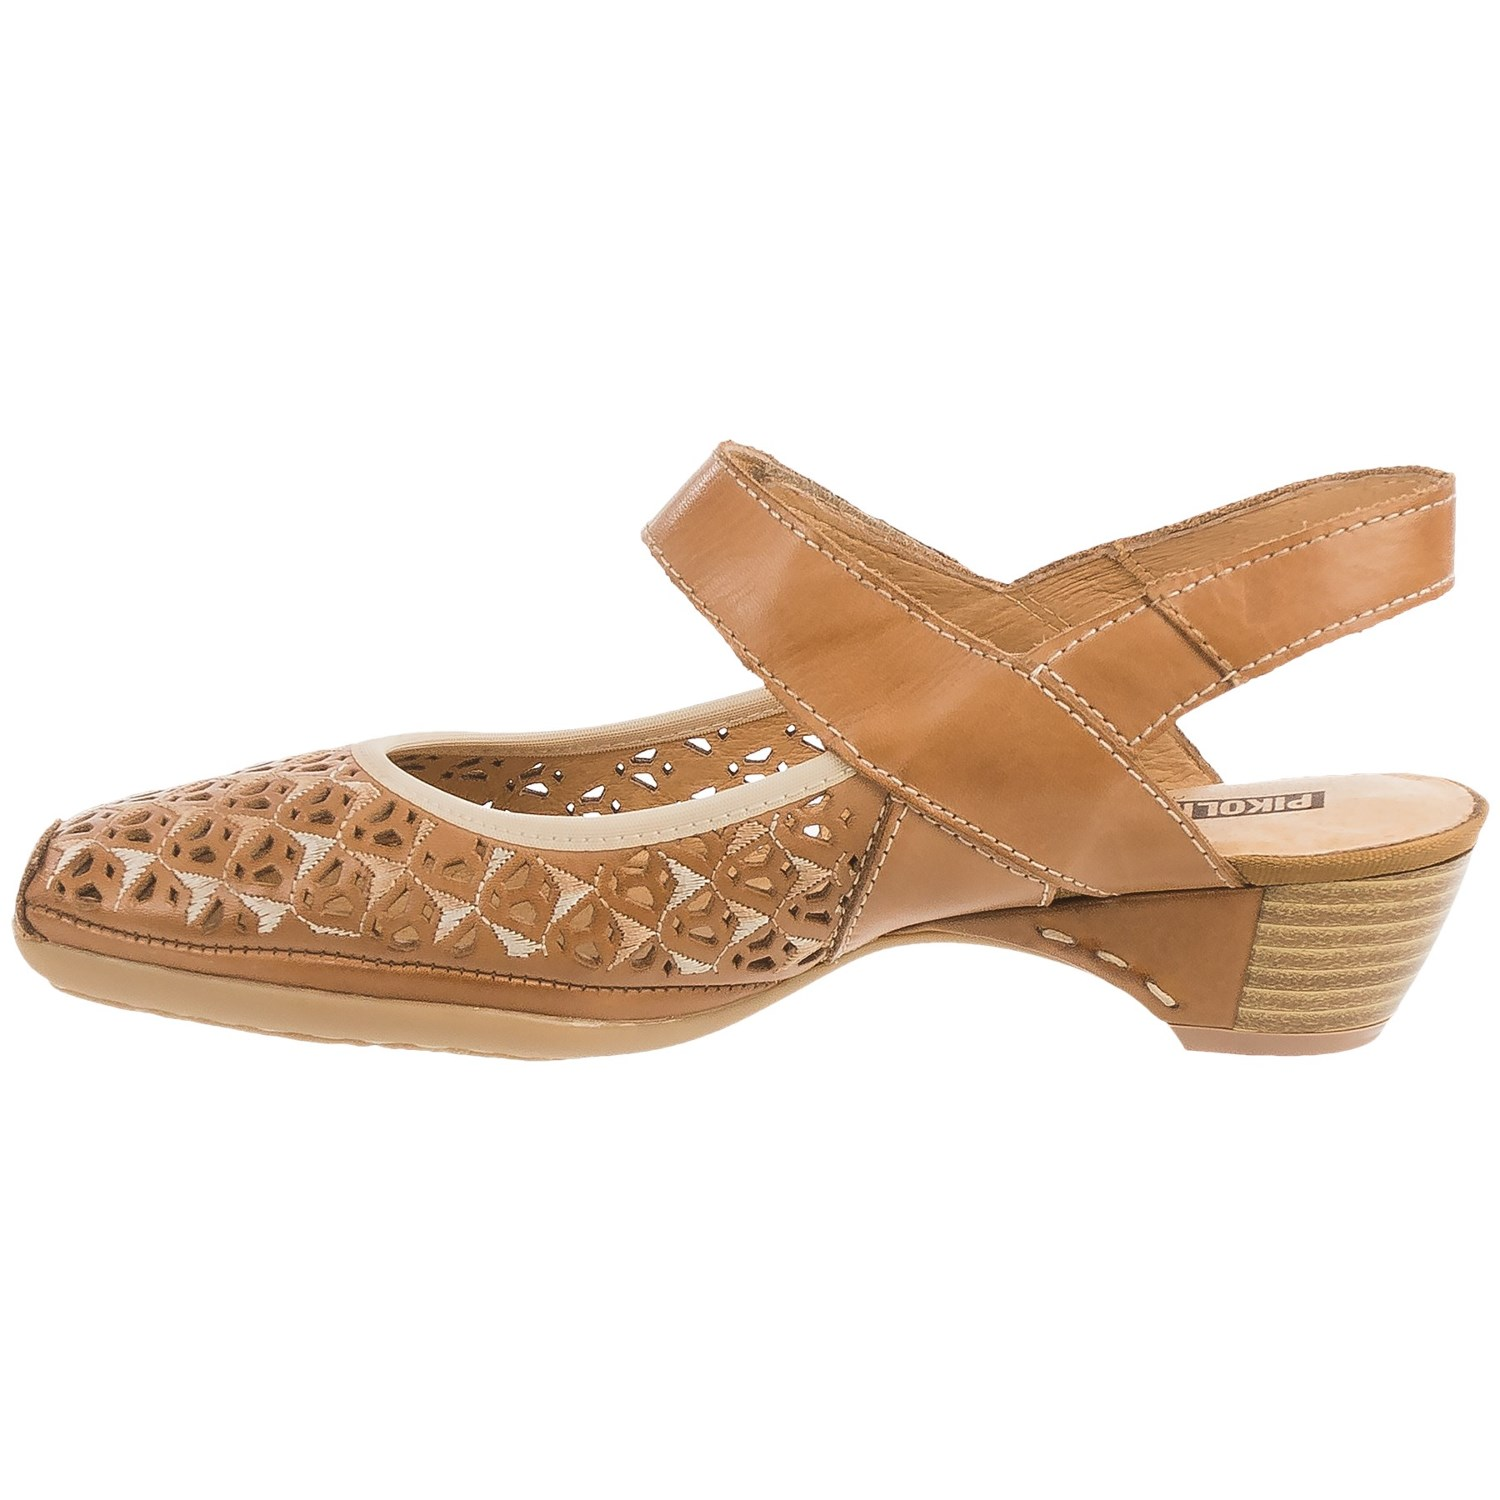 Pikolinos Shoes Women New Size